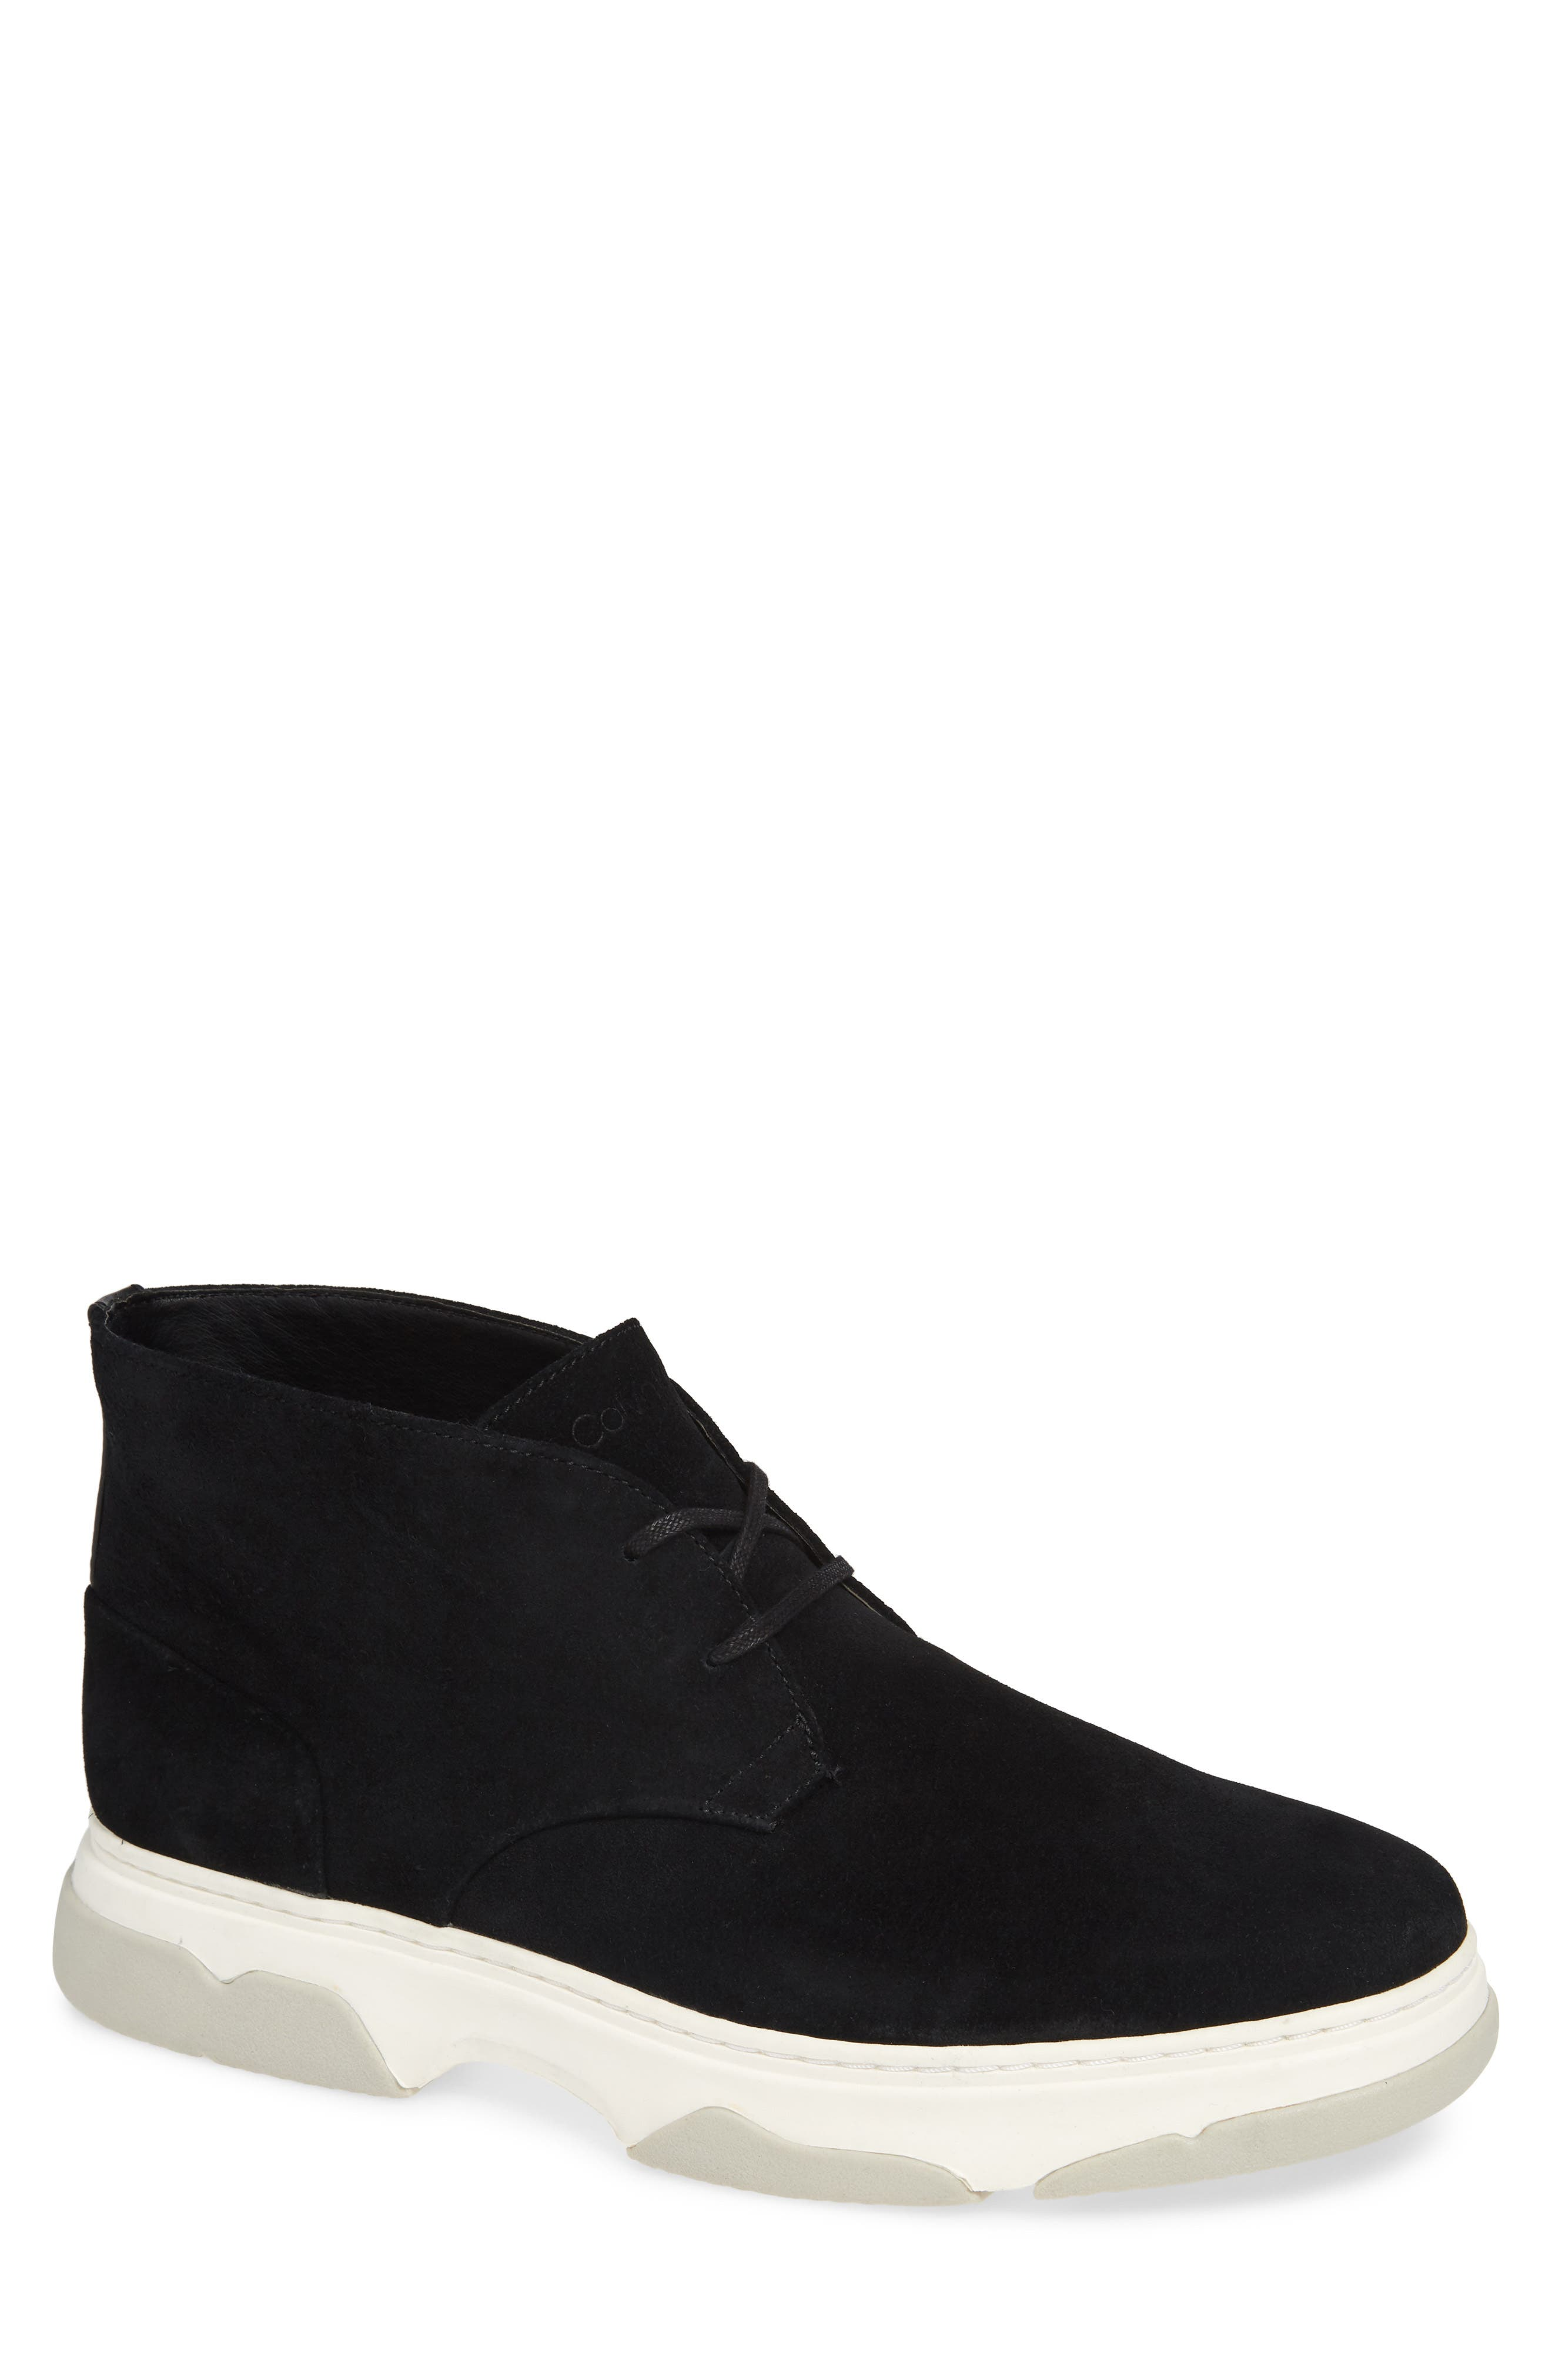 Perry Chukka Boot,                             Main thumbnail 1, color,                             BLACK CALF SUEDE